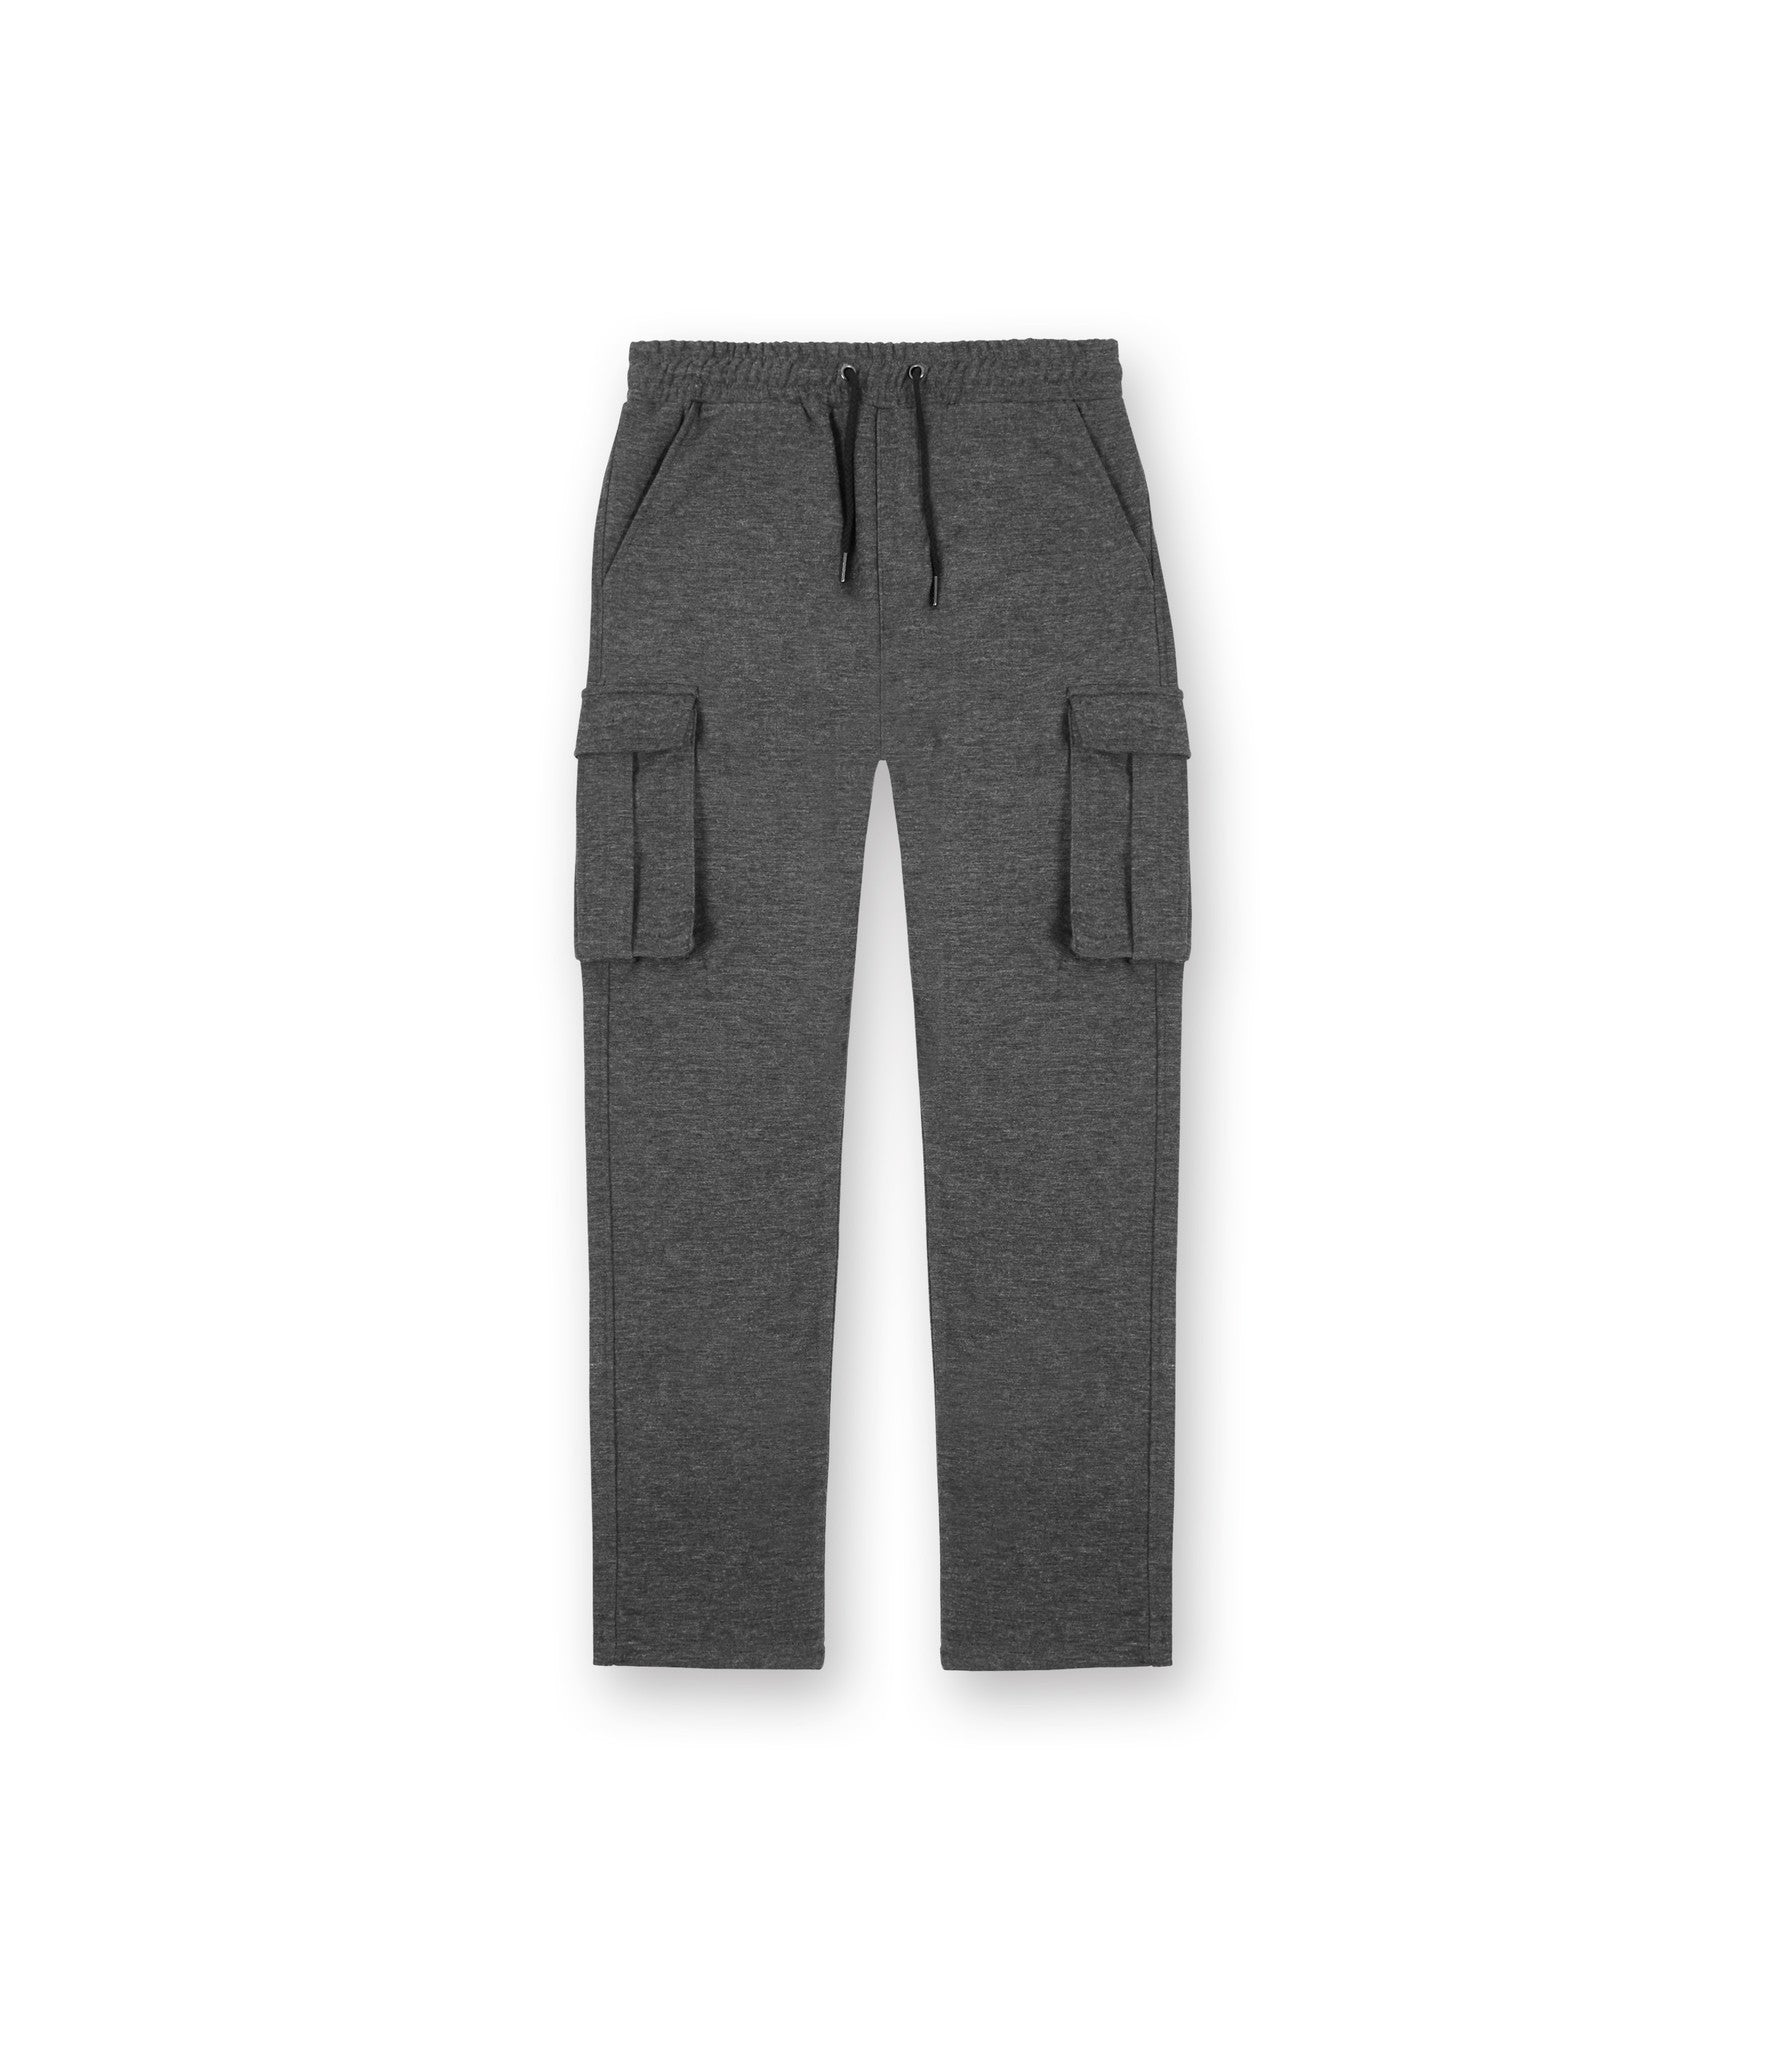 TR253 Wool Blend Cropped Cargo Pants - Charcoal - underated london - underatedco - 2